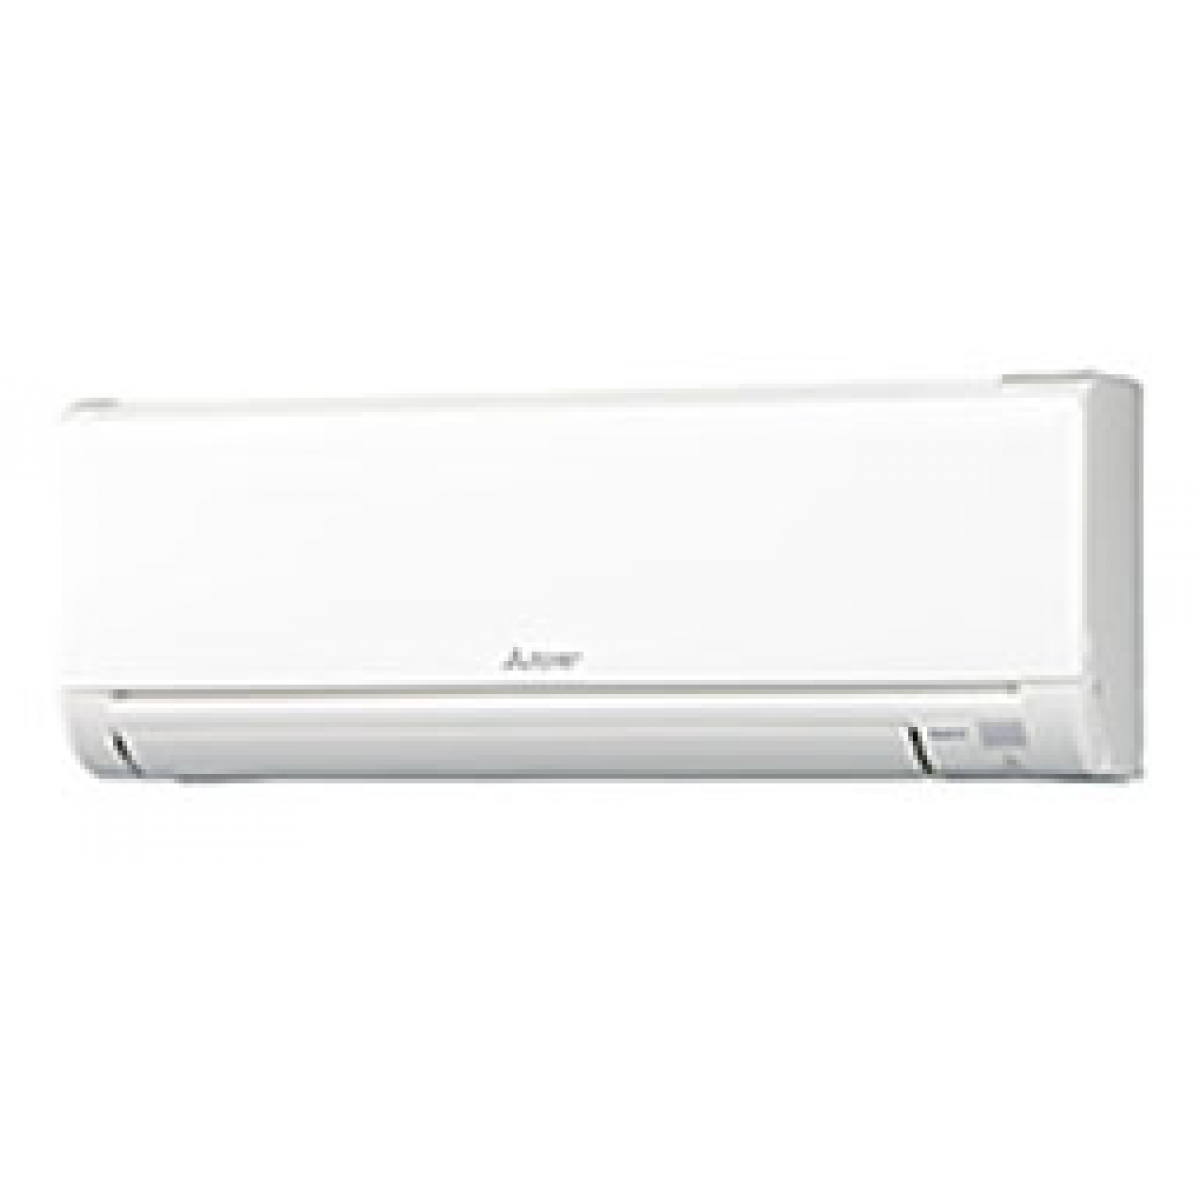 AC / 18K BTU Mitsubishi MSYGL Wall Mounted Air Conditioner Indoor Unit #696862